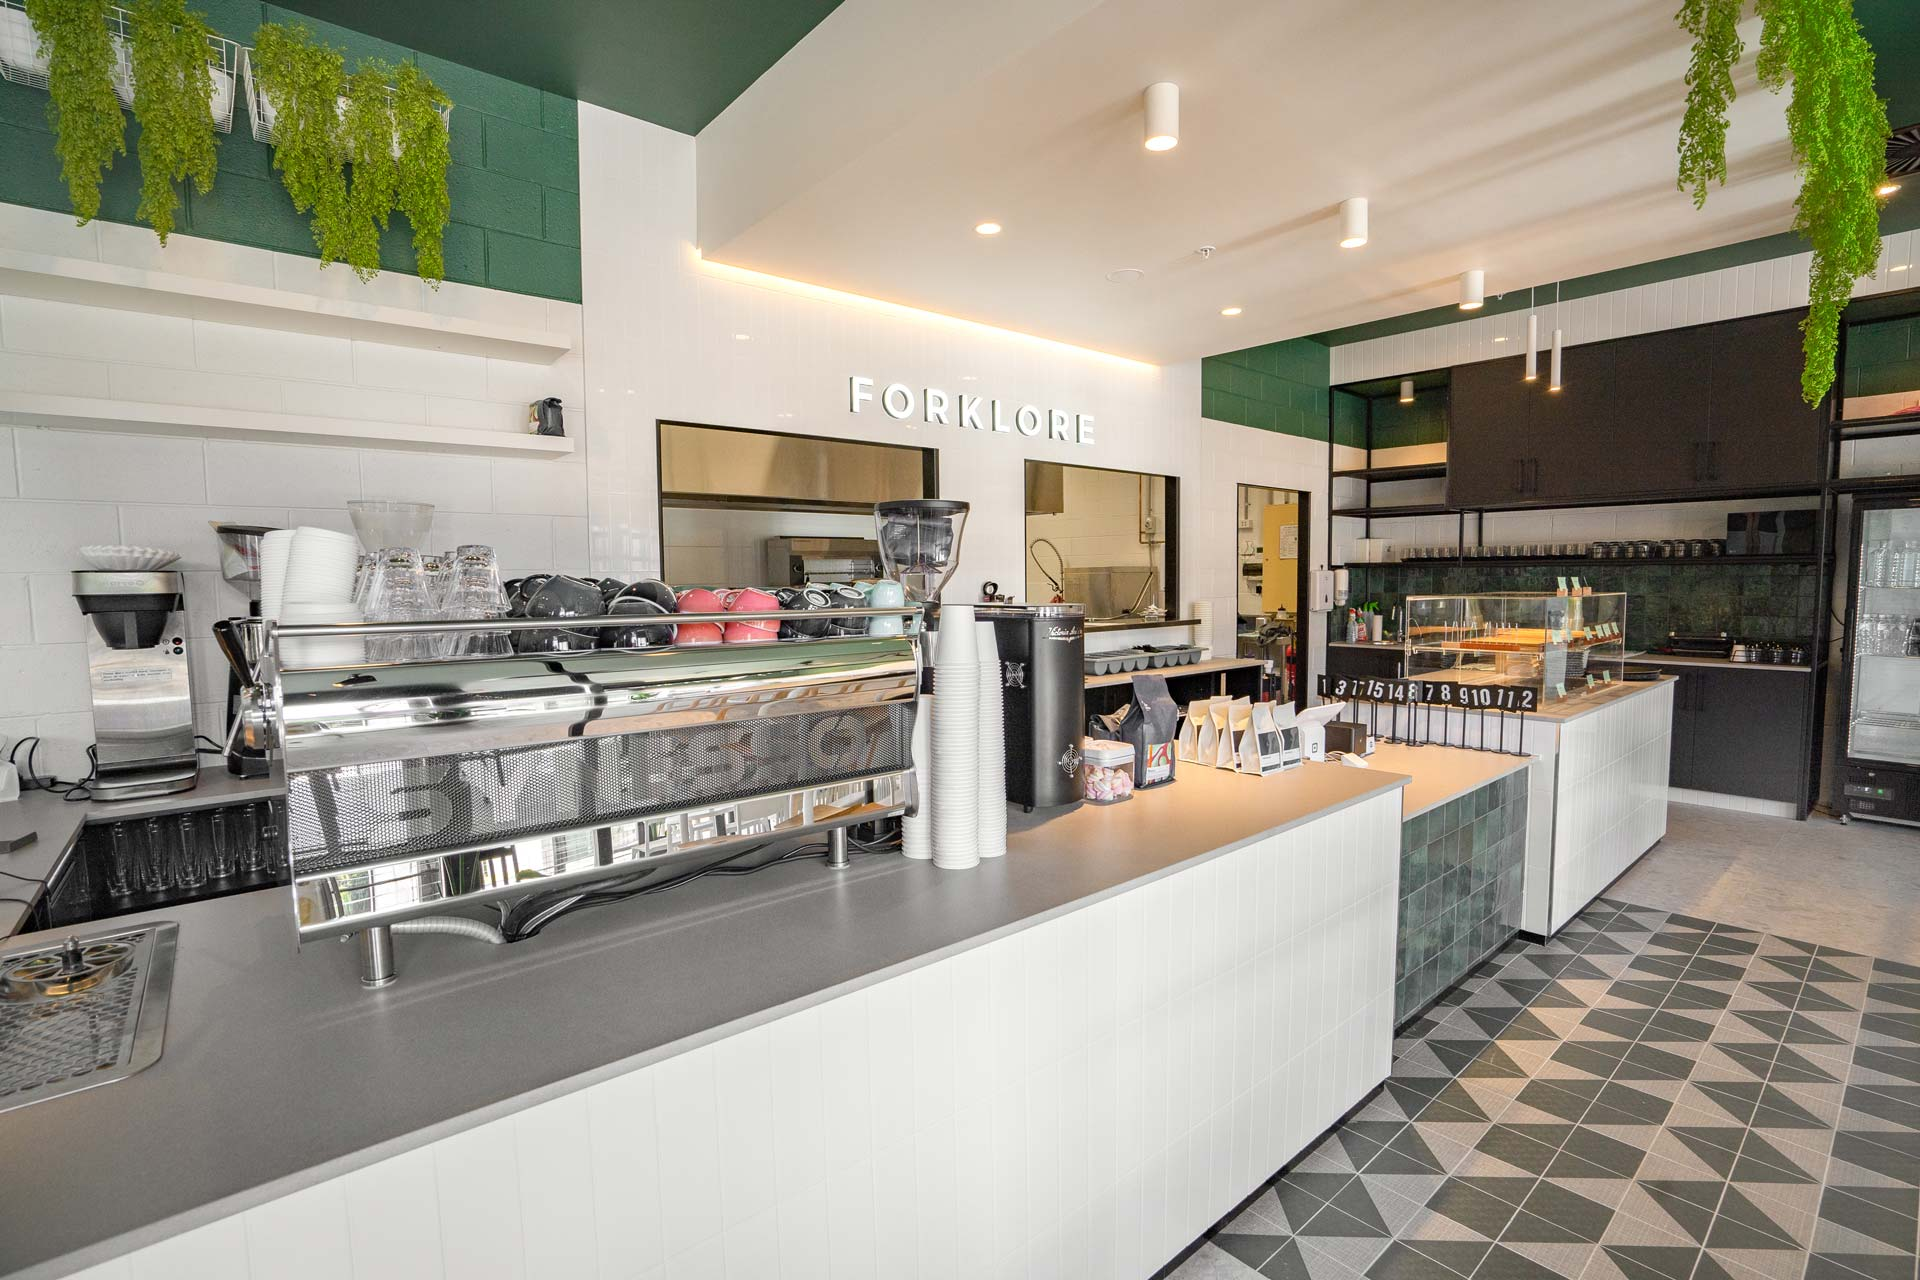 Forklore cafe fitout